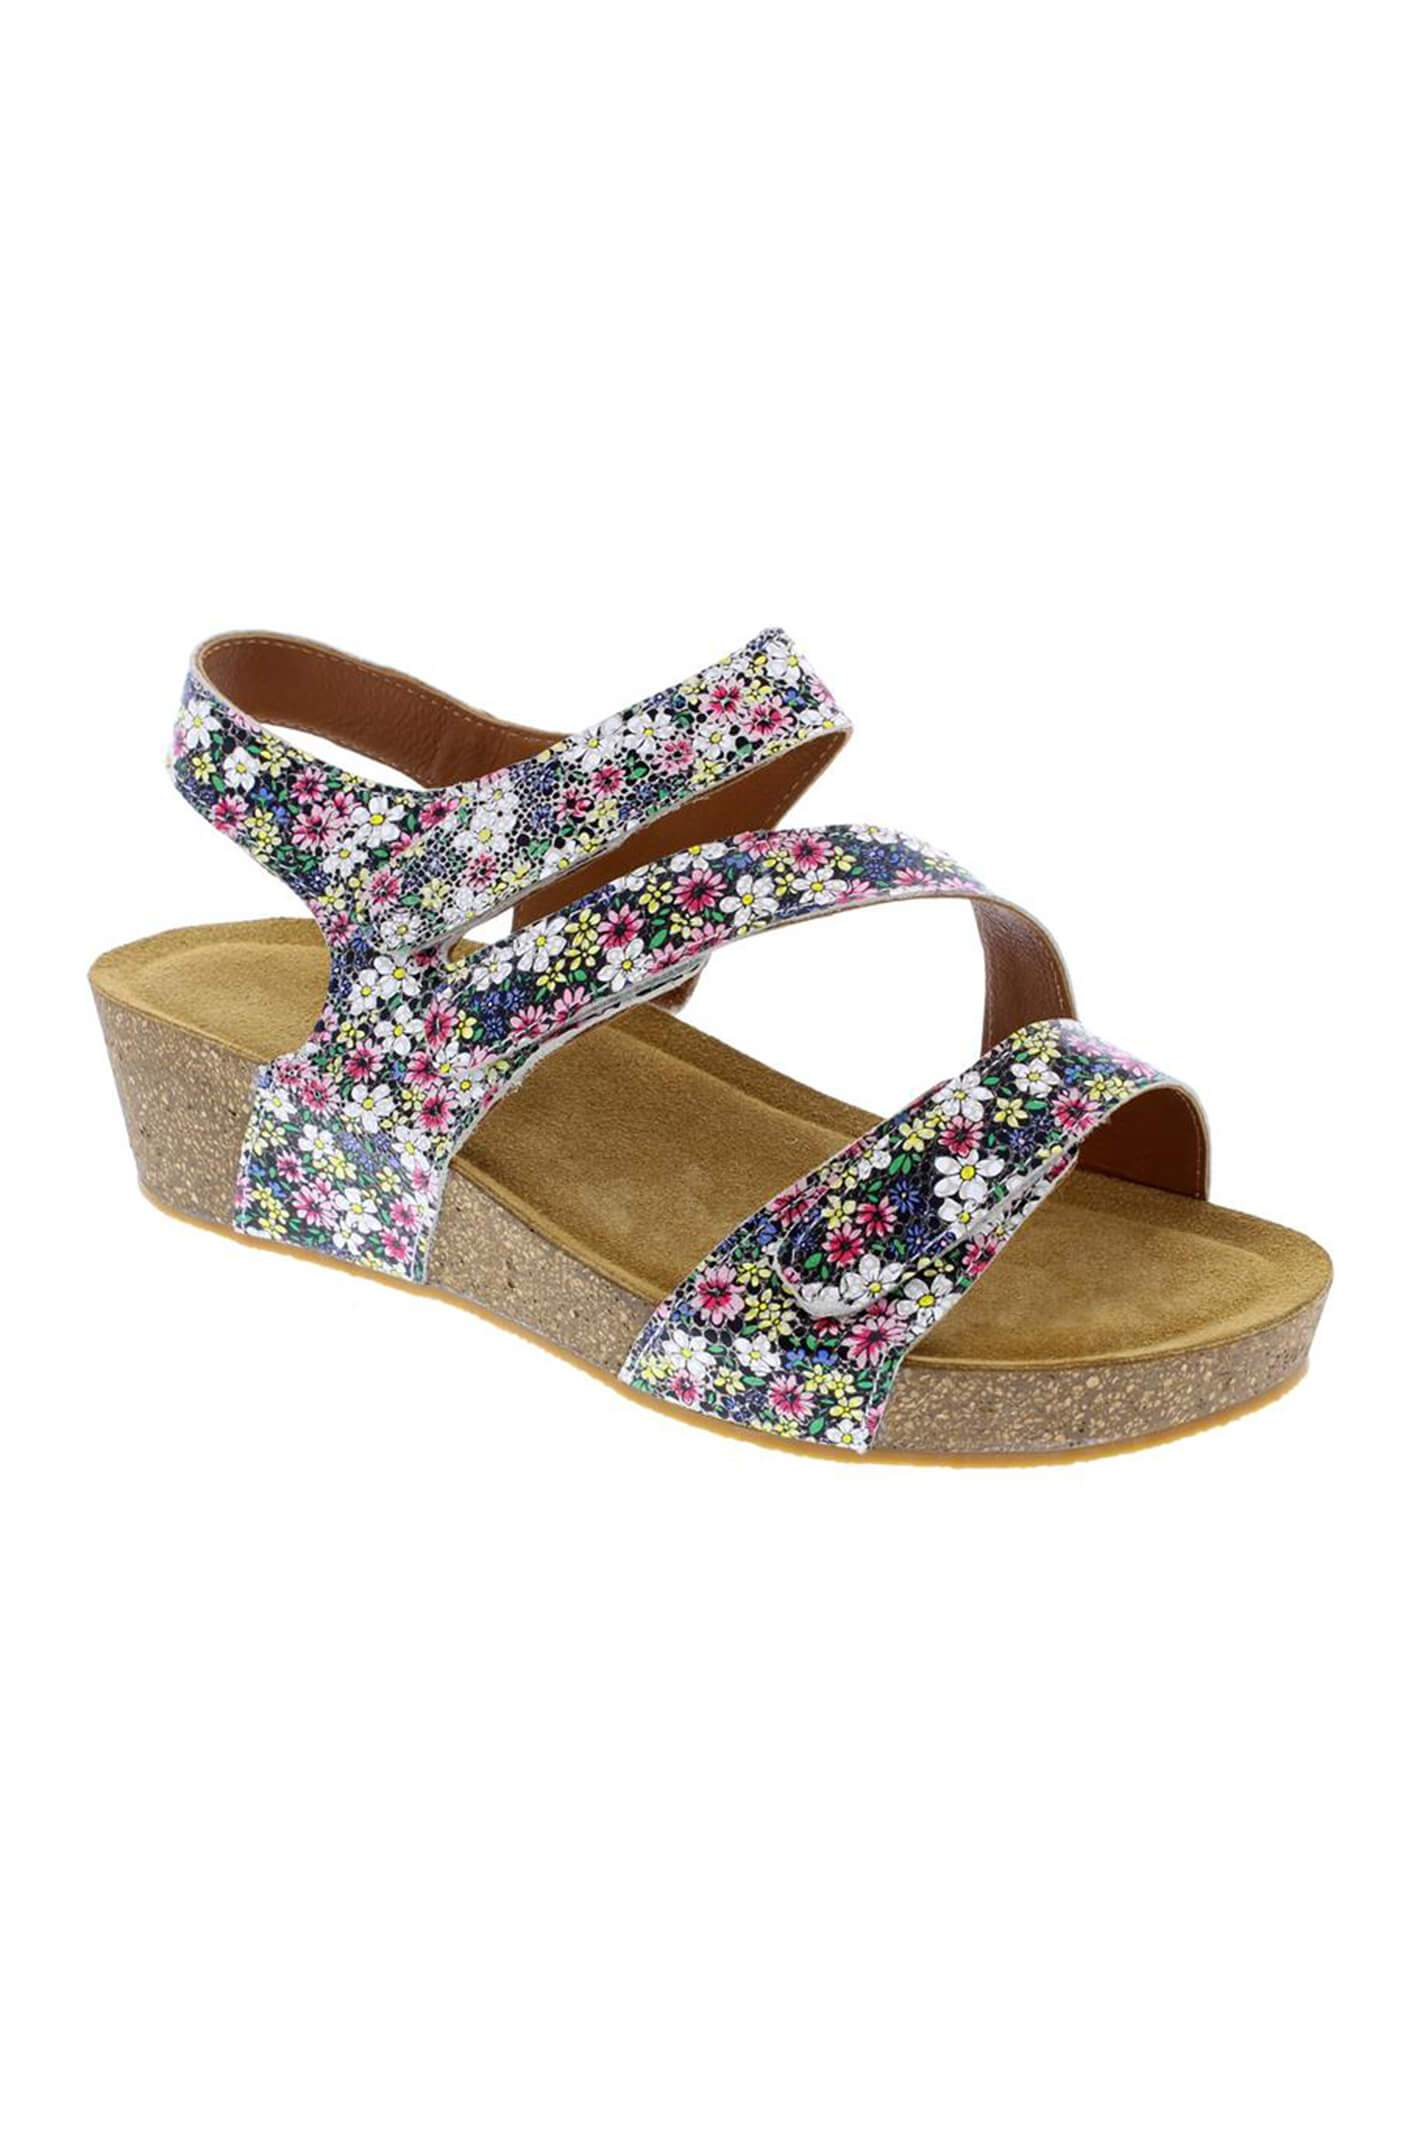 Adesso A6070 Jodie Floral Wedges 3